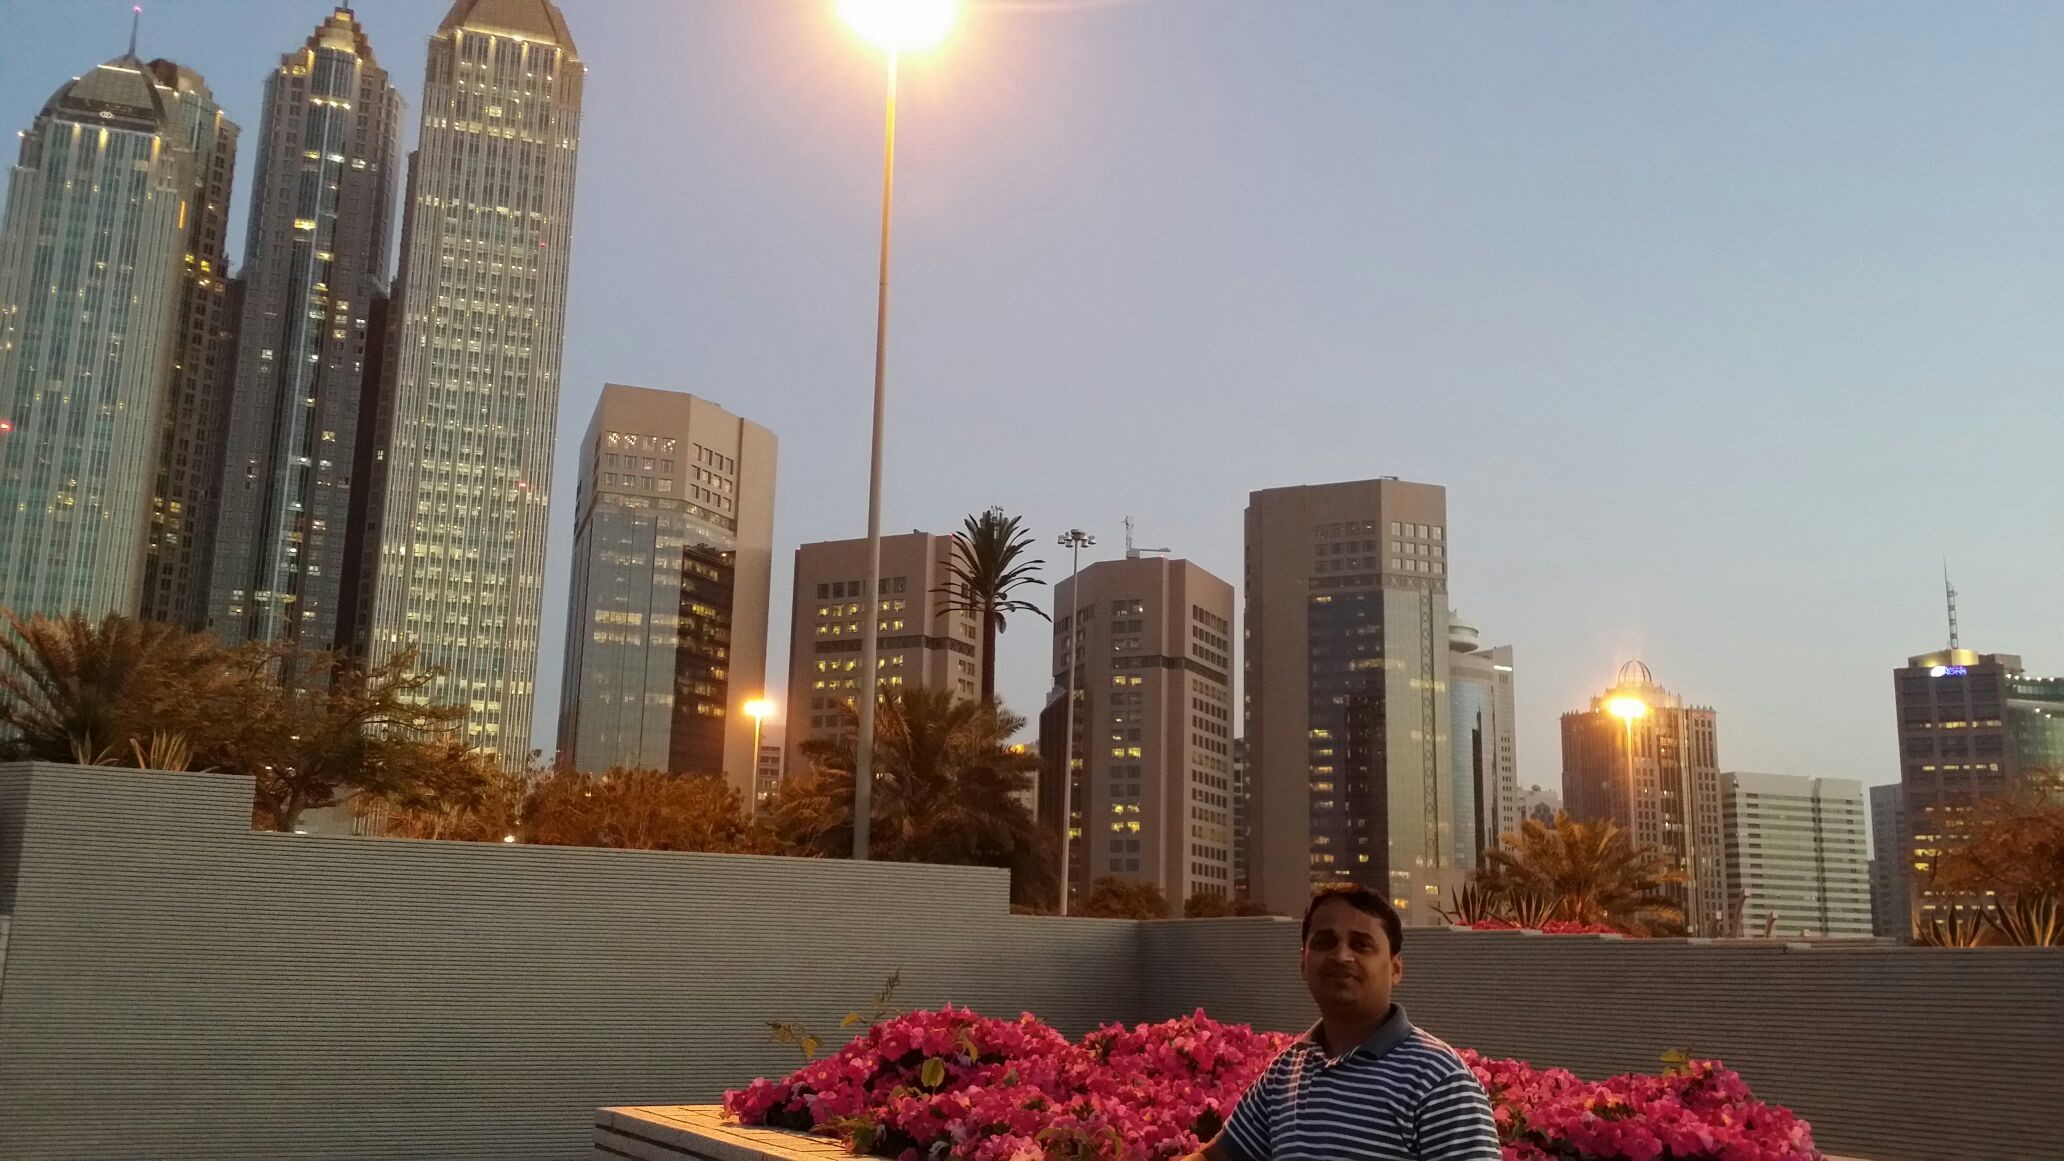 Wonderful Abu Dhabi Evening.